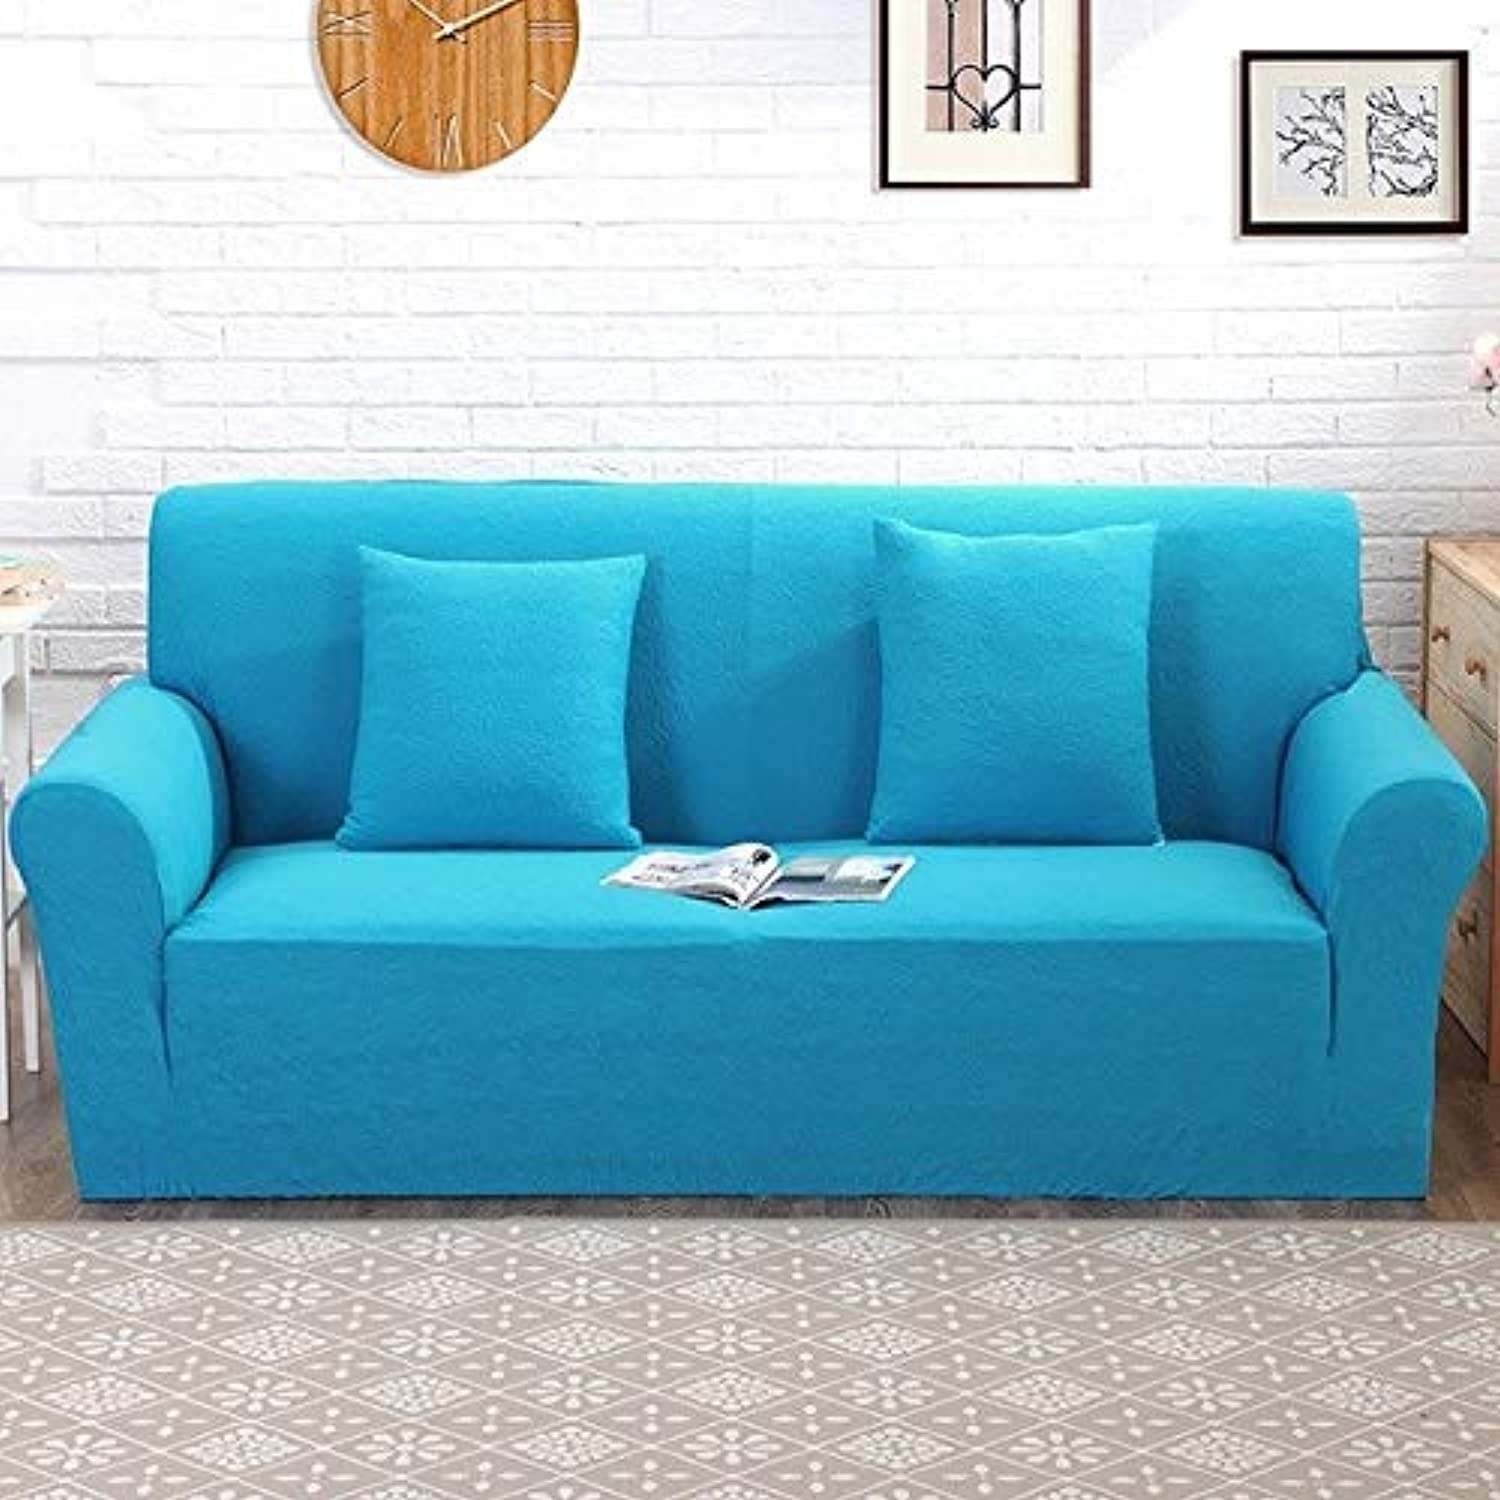 Universal Sofa Bed Cover Without Armrest Tight Wrap Elastic Stretch All-Inclusive Couch Cover Folding Sofa Cover S M L Sizes   color 3, Small Size